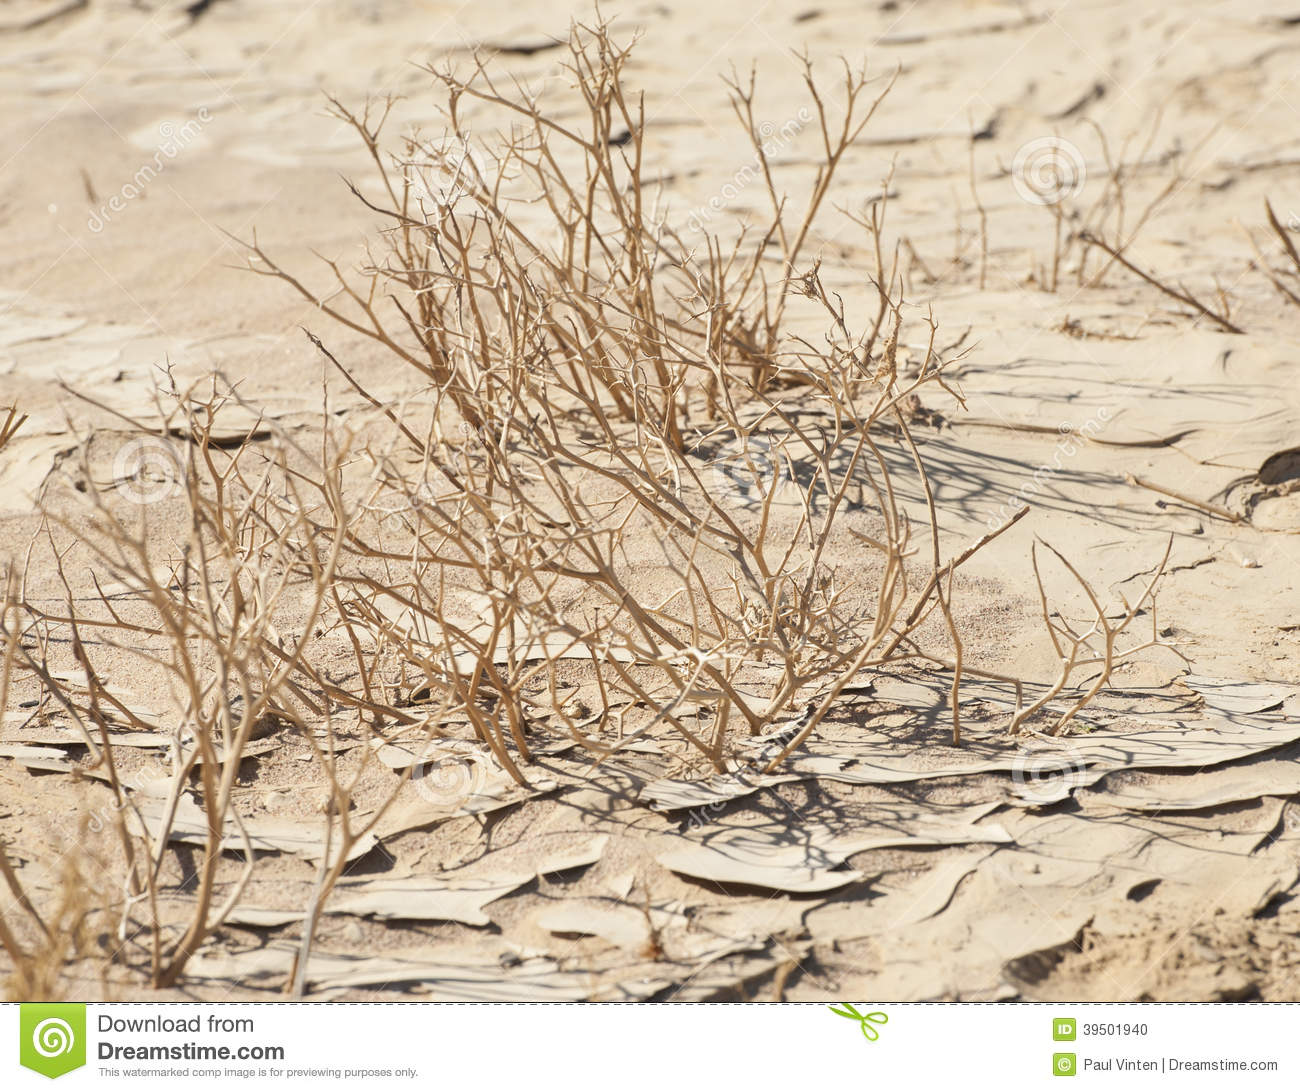 Dried plants in the desert